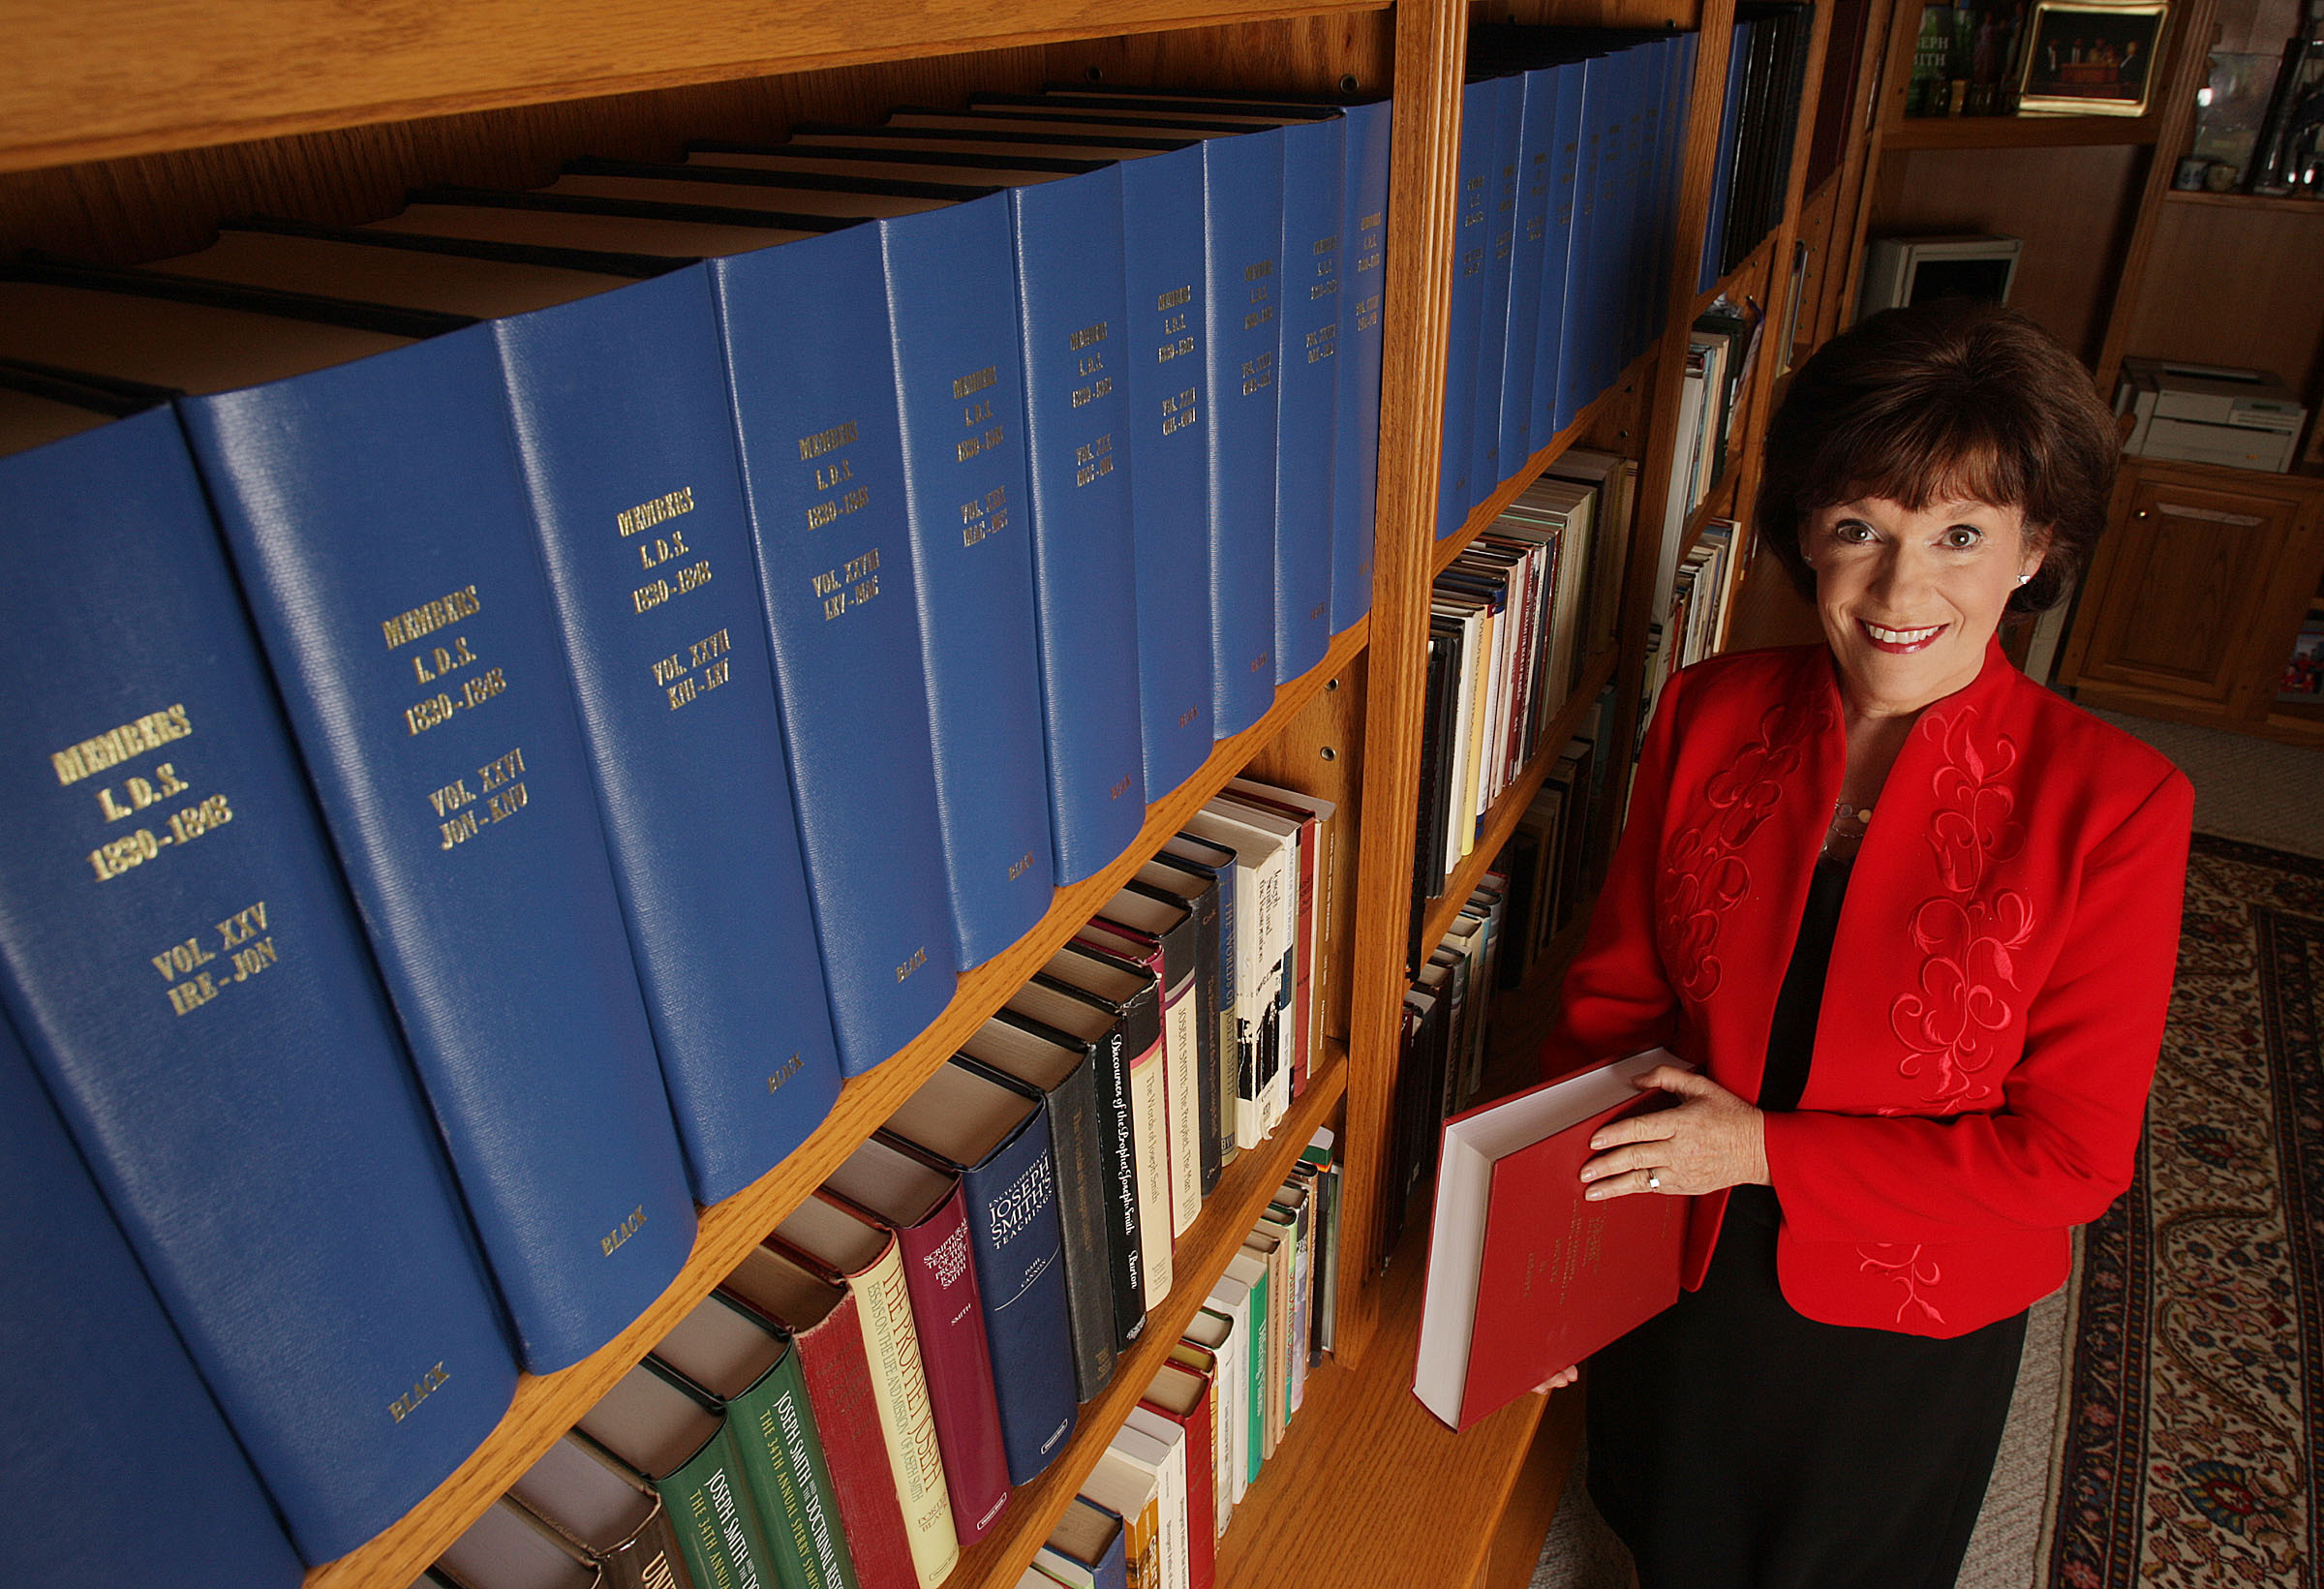 Author Susan Easton Black standing next to a bookshelf in her home in Provo, Utah.